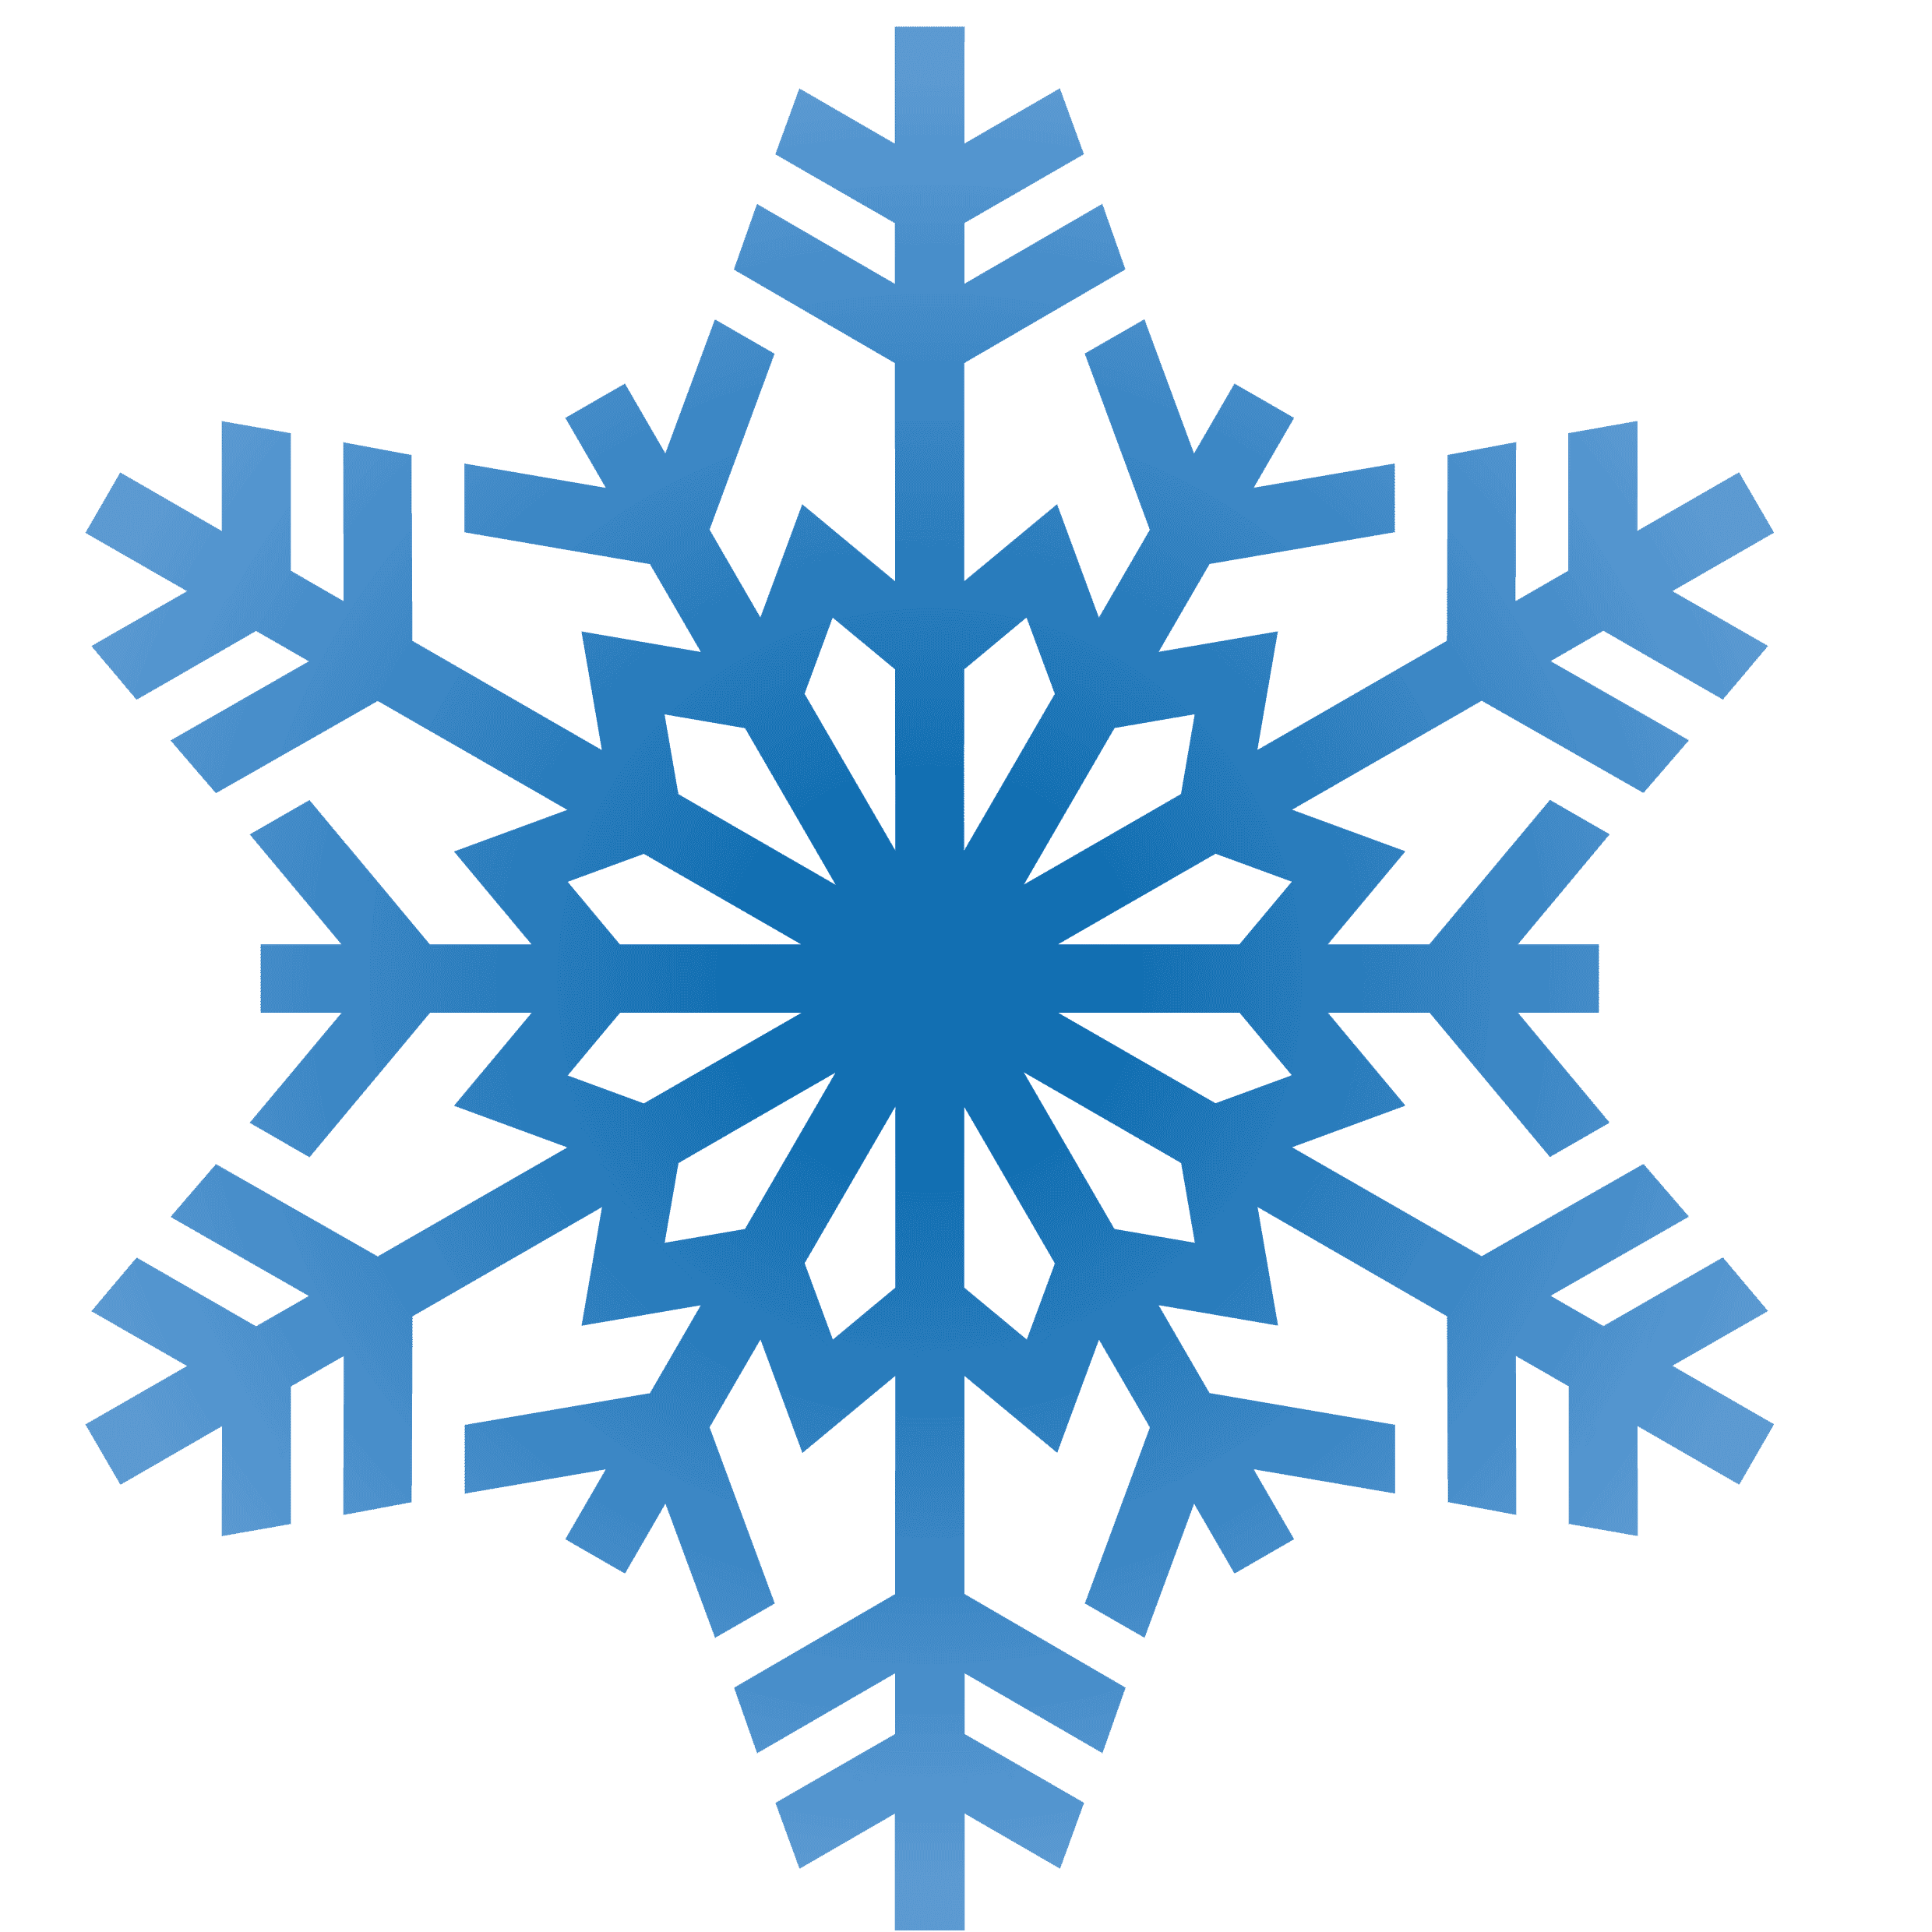 Snowflake Outline With Clipart Simple Snowflakes Scene Outline.